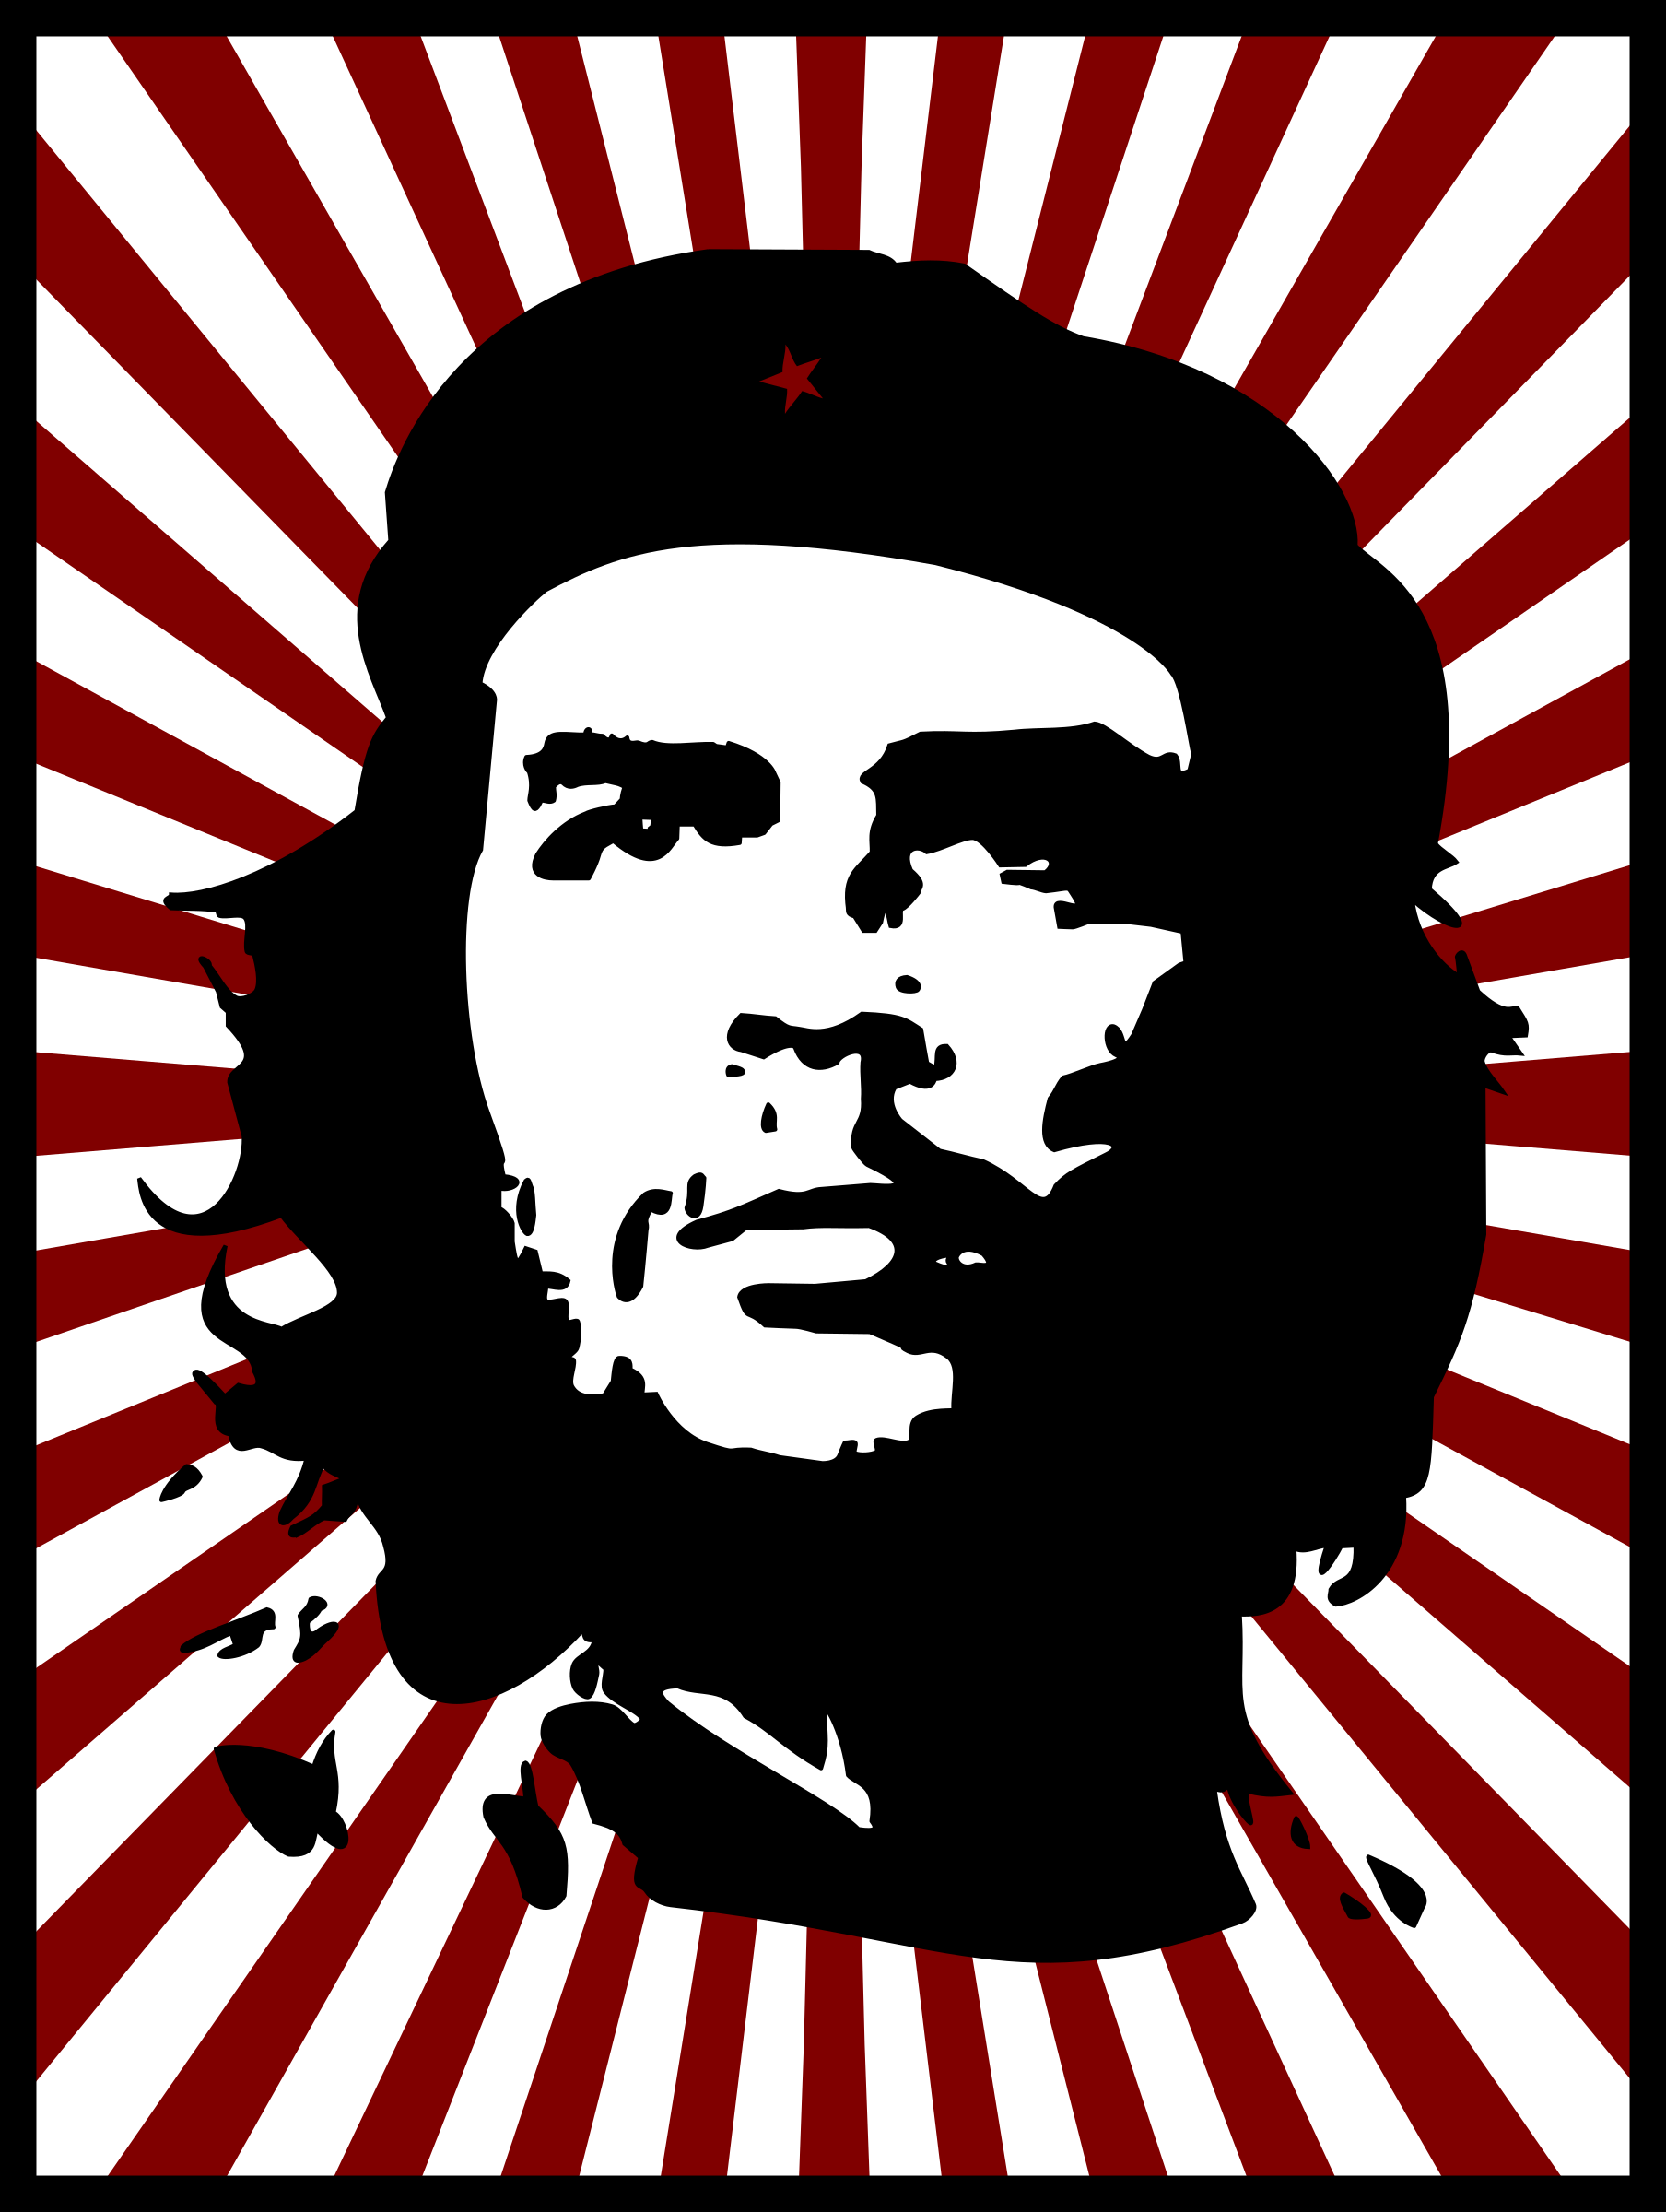 Che with red background by kuba